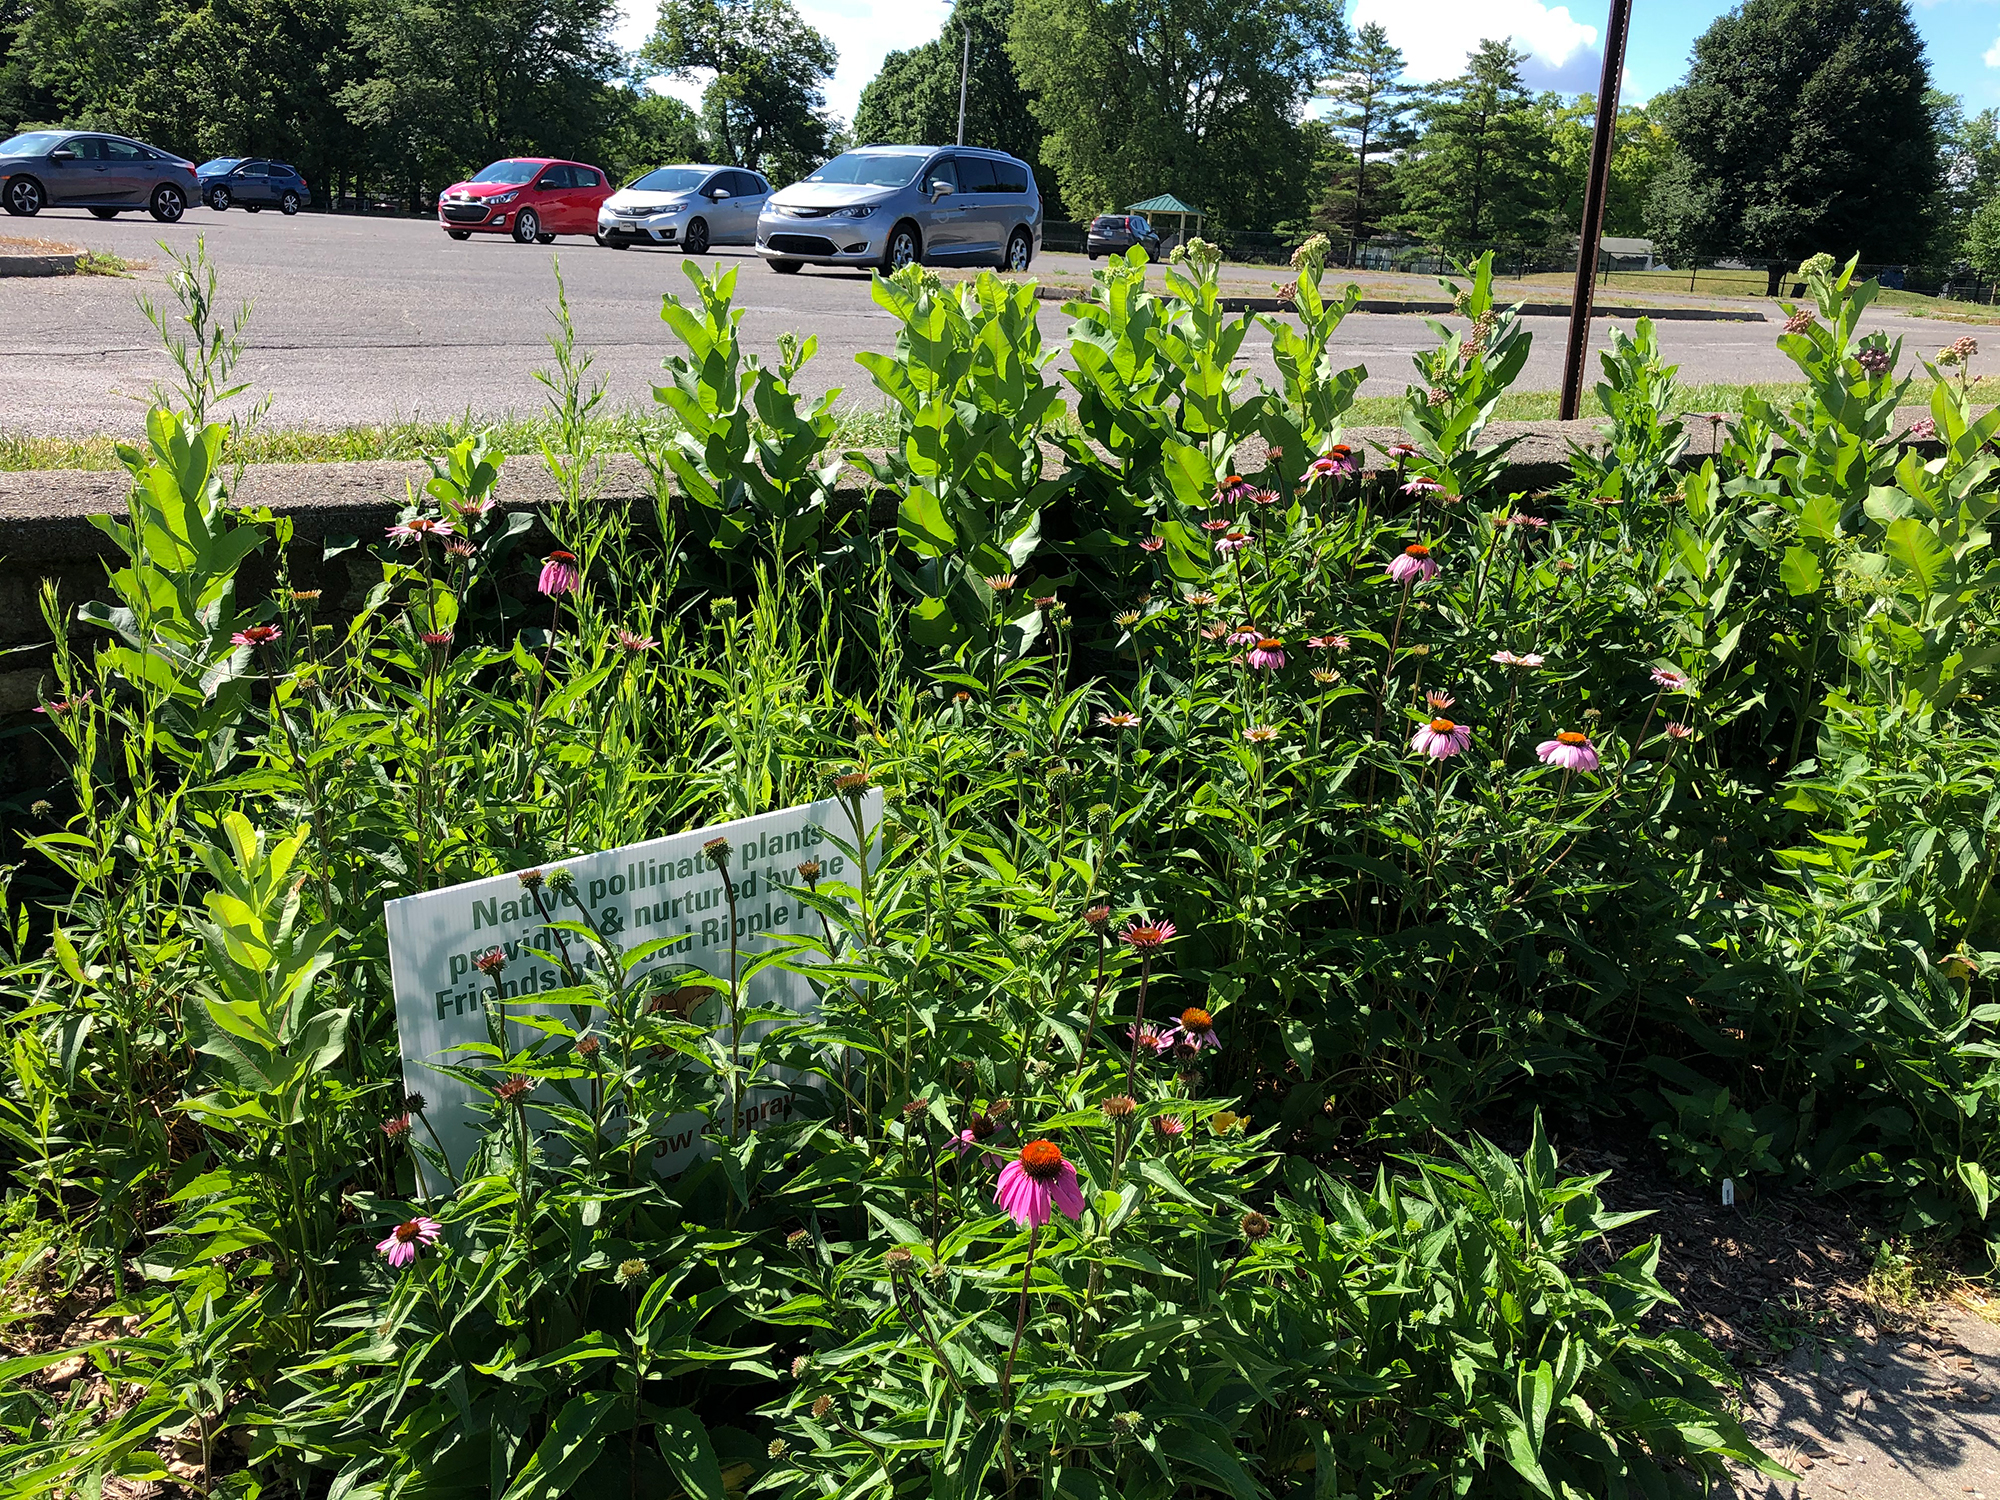 Coneflowers, milkweed & more